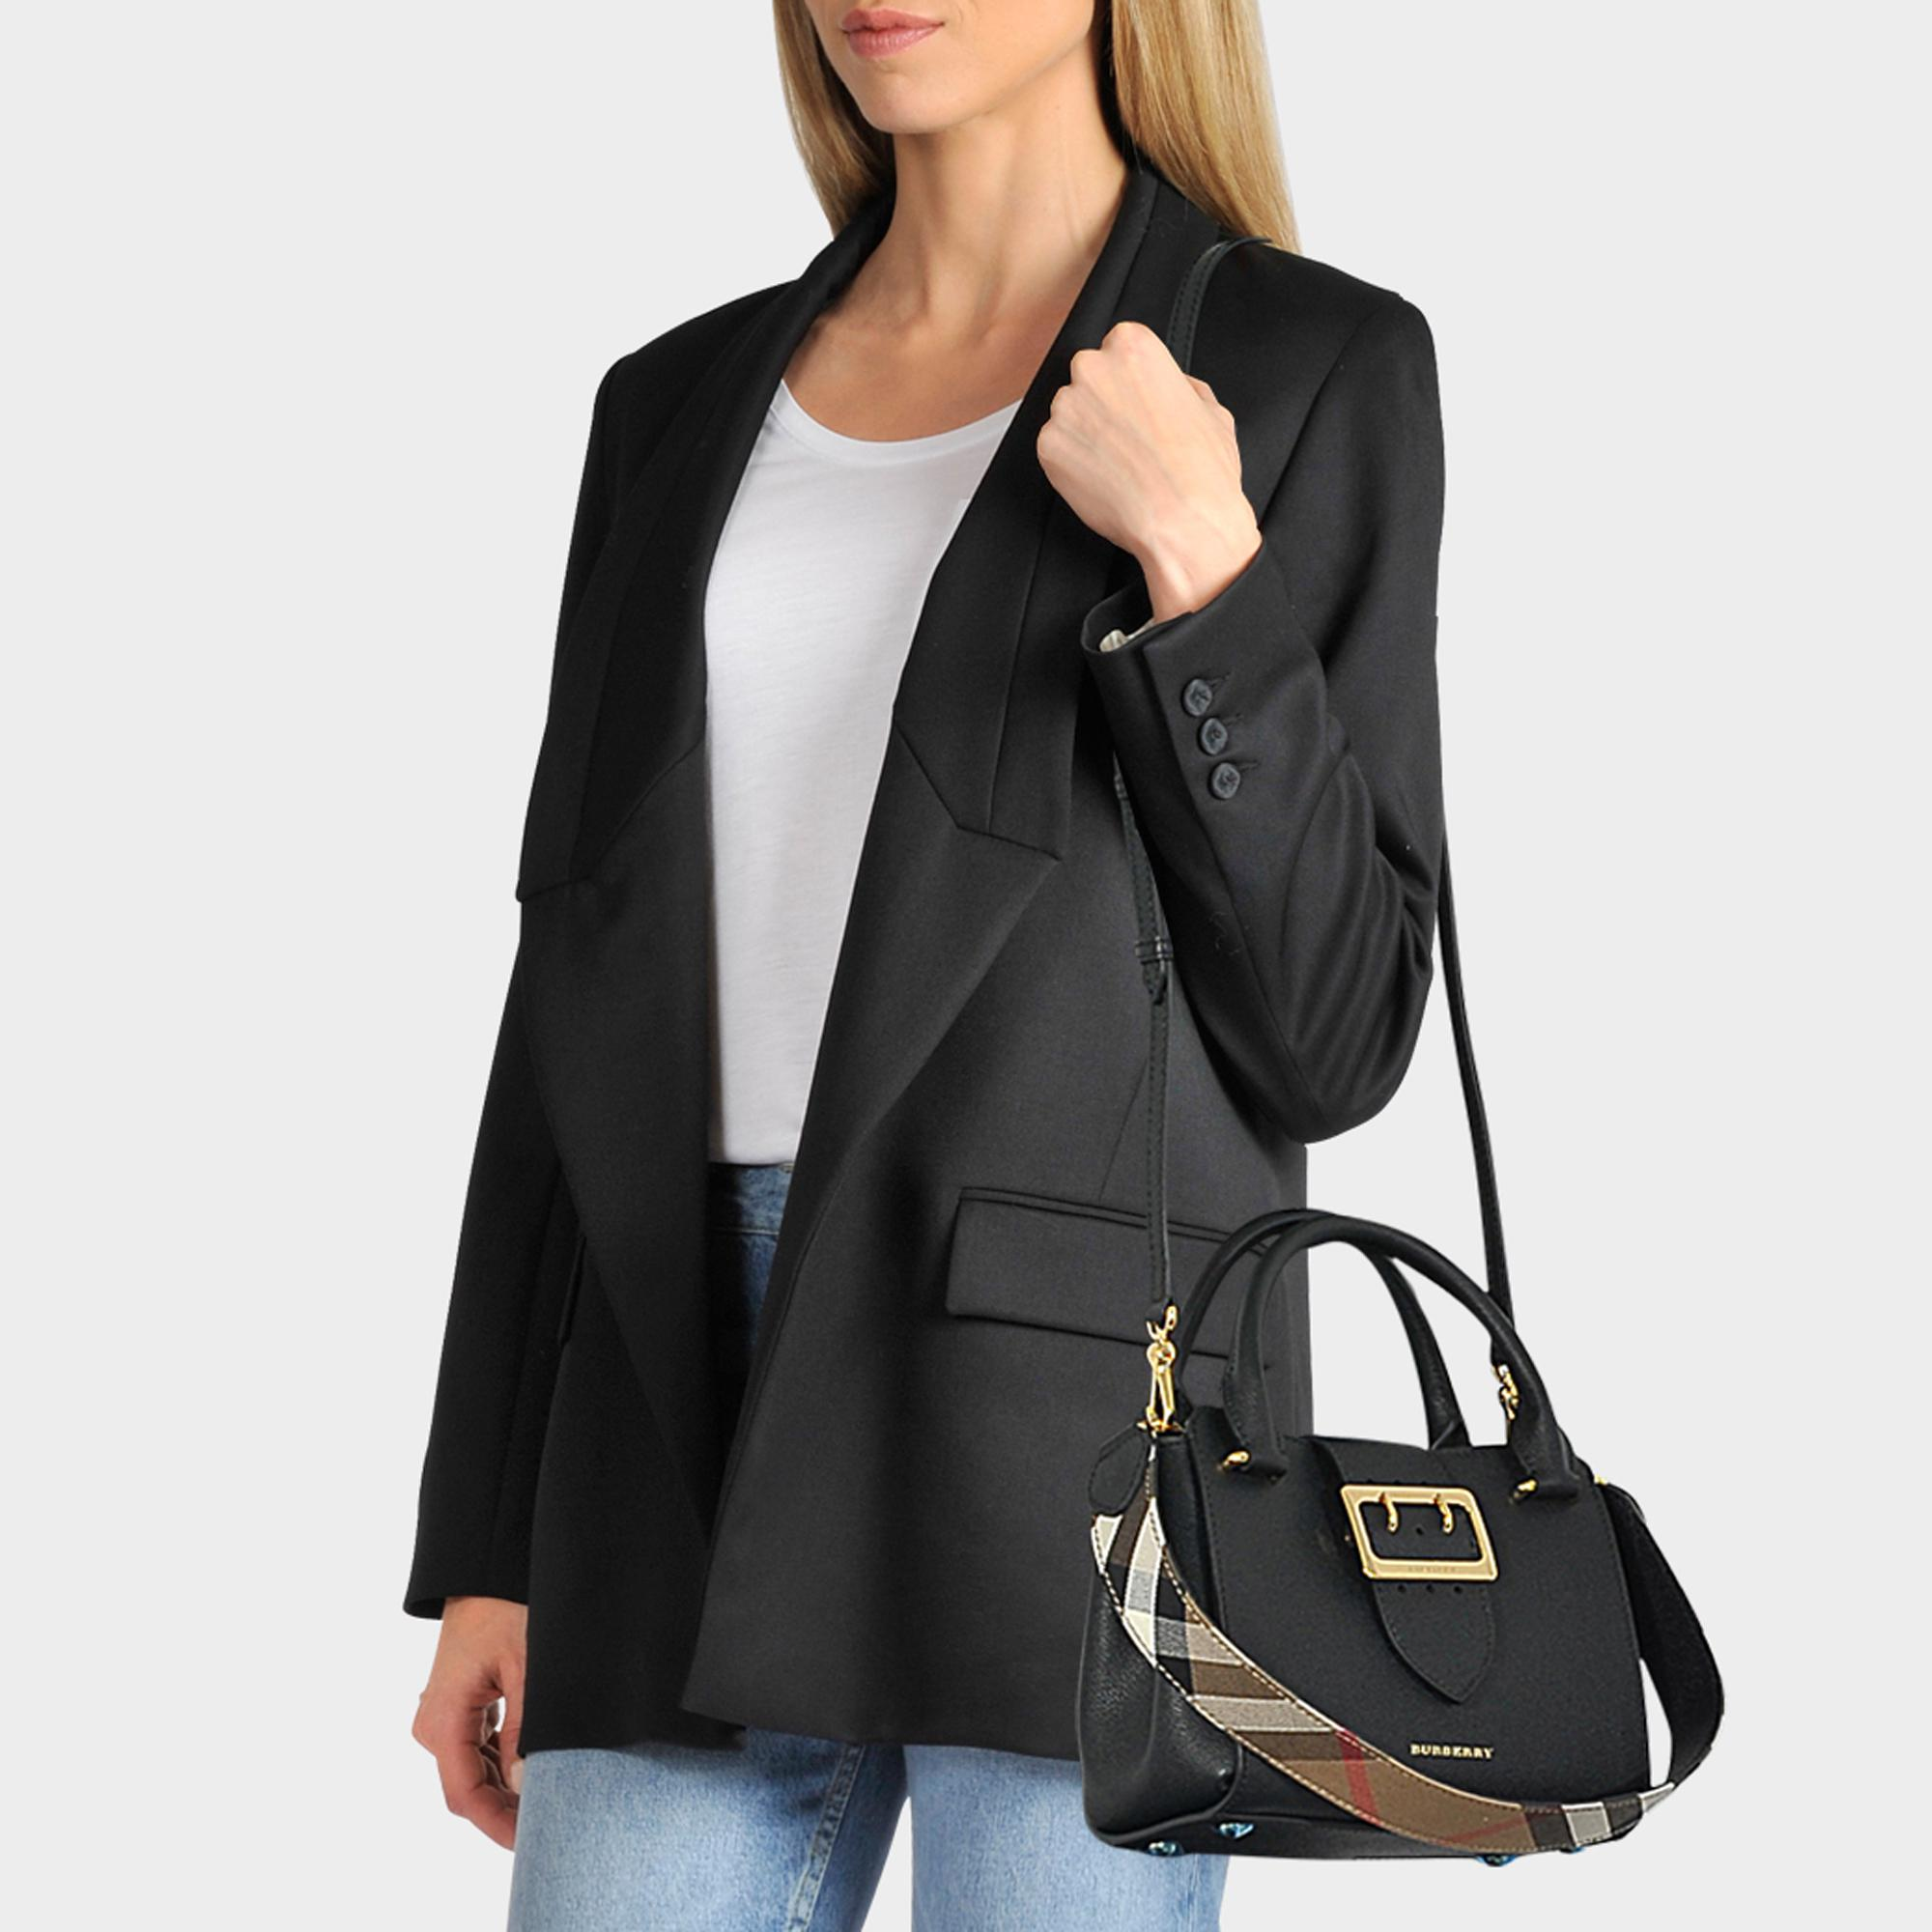 ec5d3bf448a2 Lyst - Burberry Small Buckle Tote Bag In Black Grained Calfskin in Black